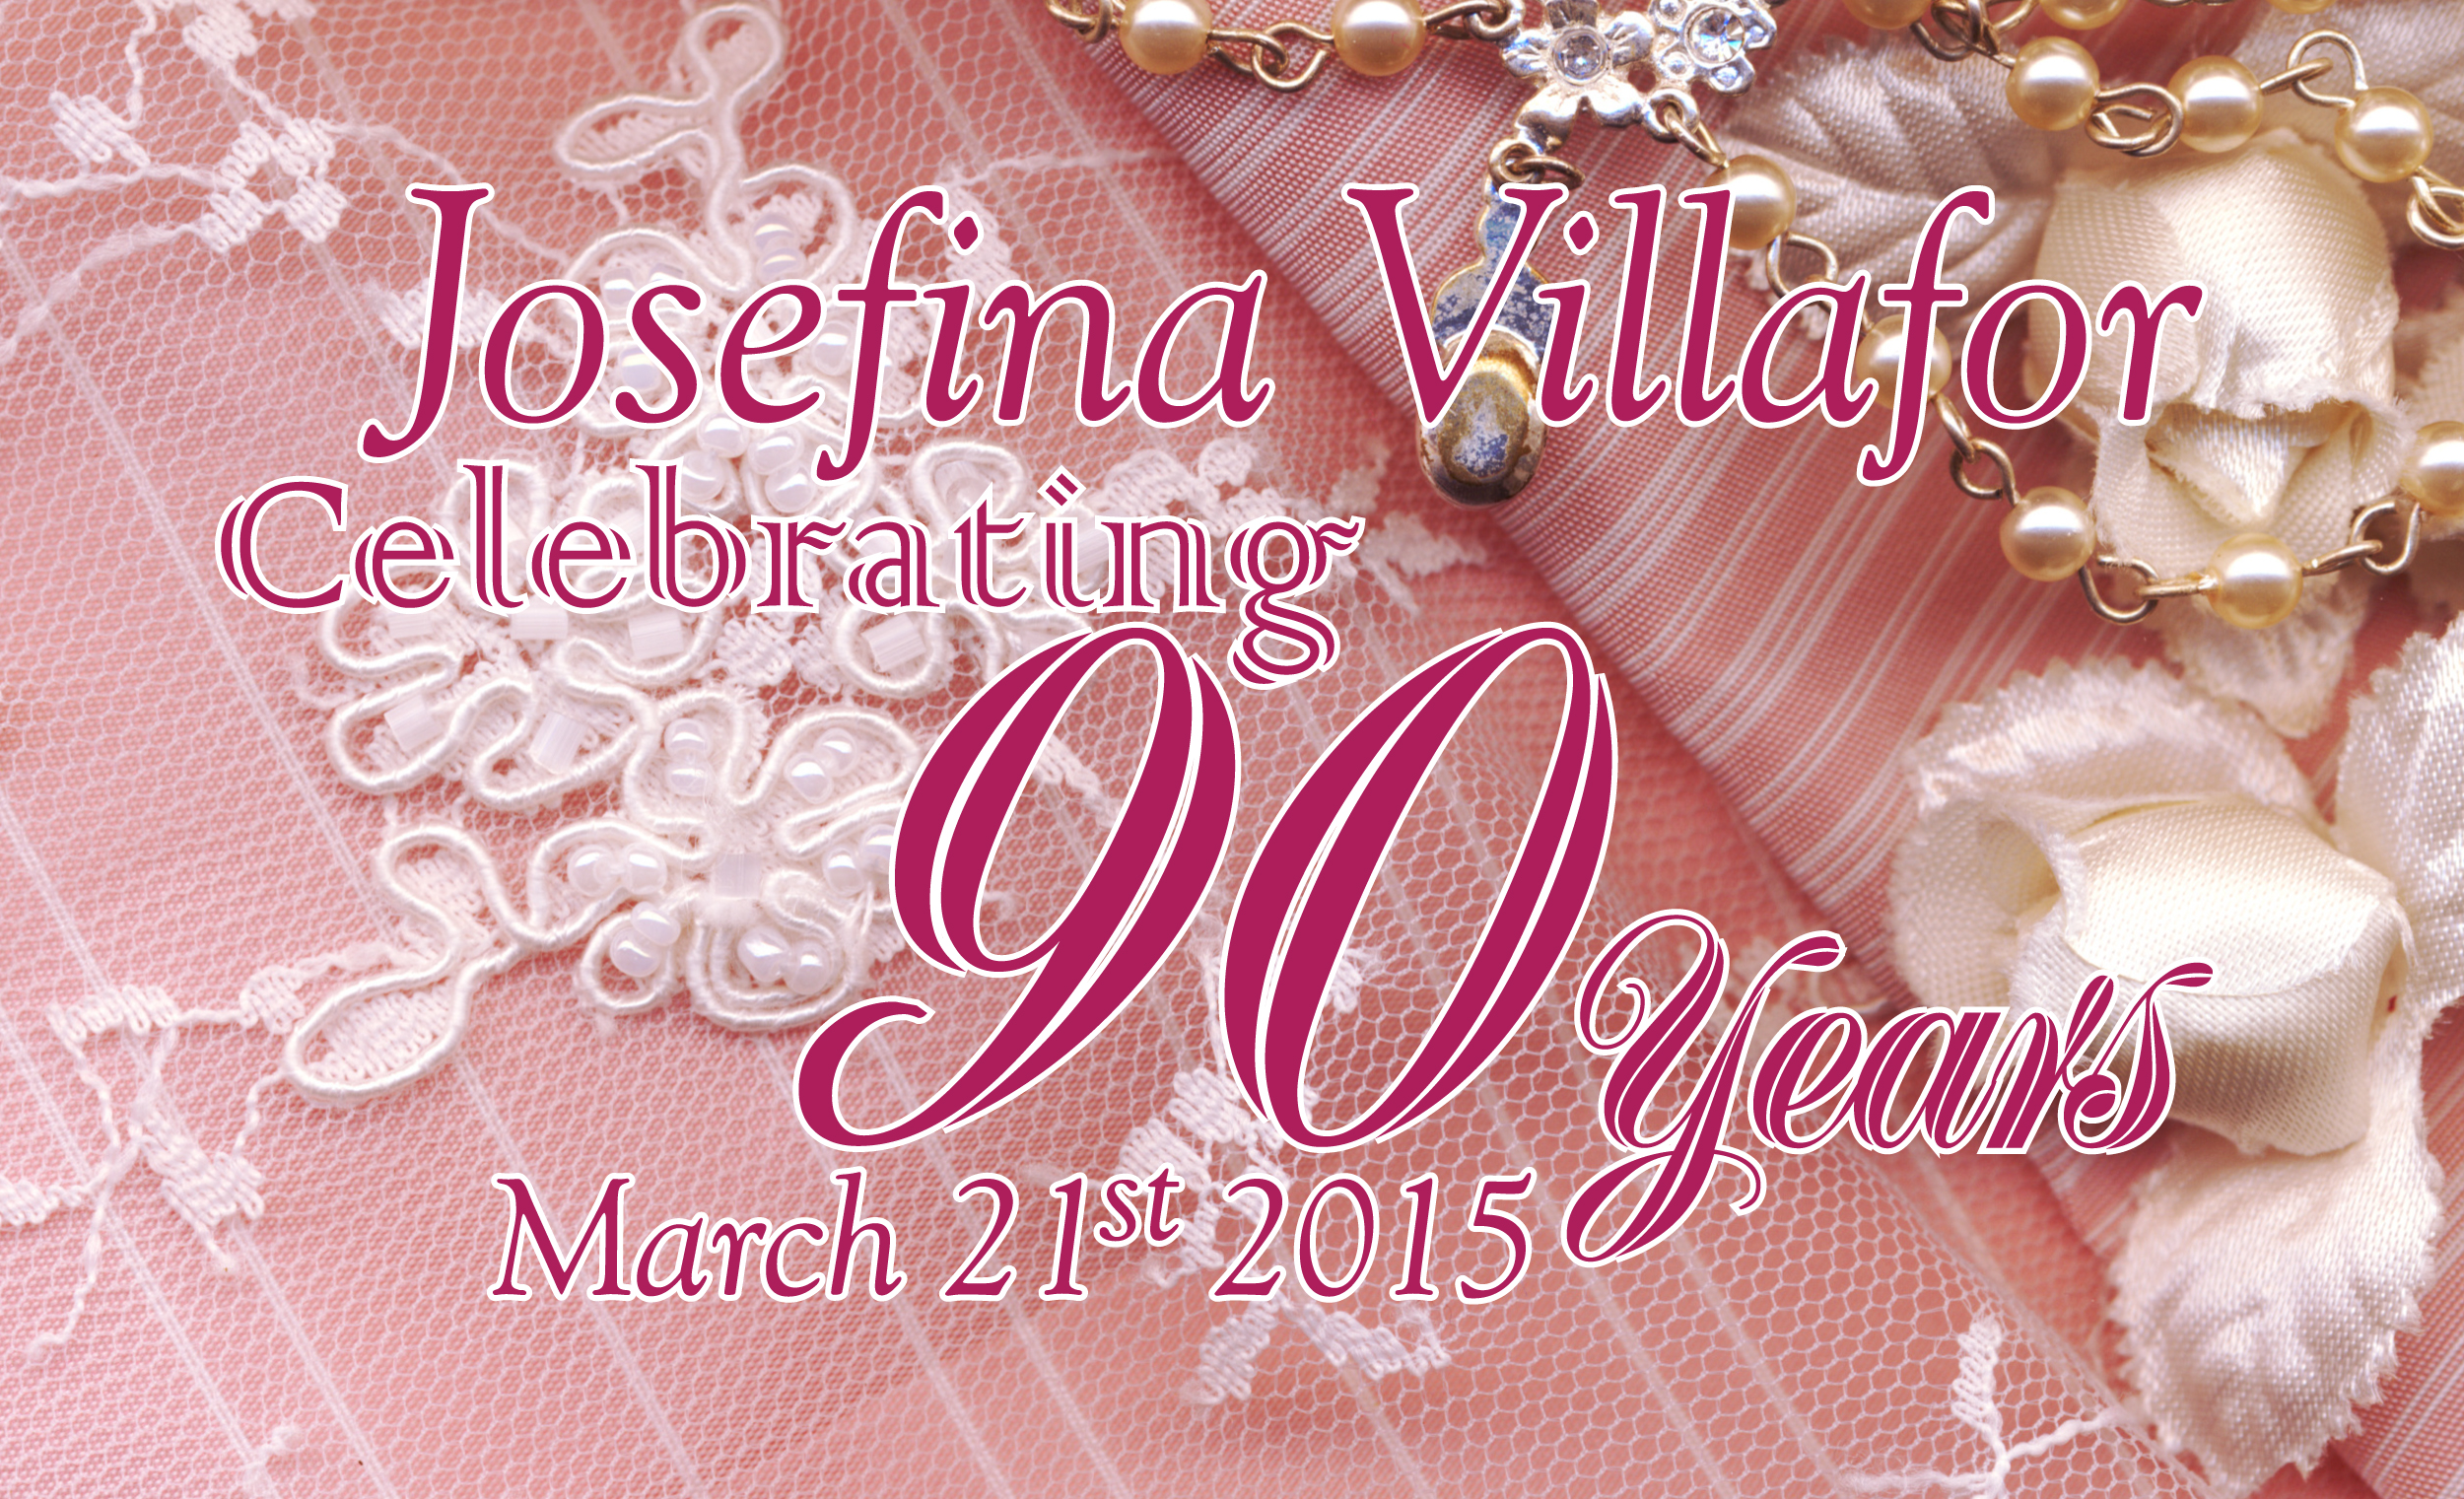 Josefina 90th Bday revised.jpg